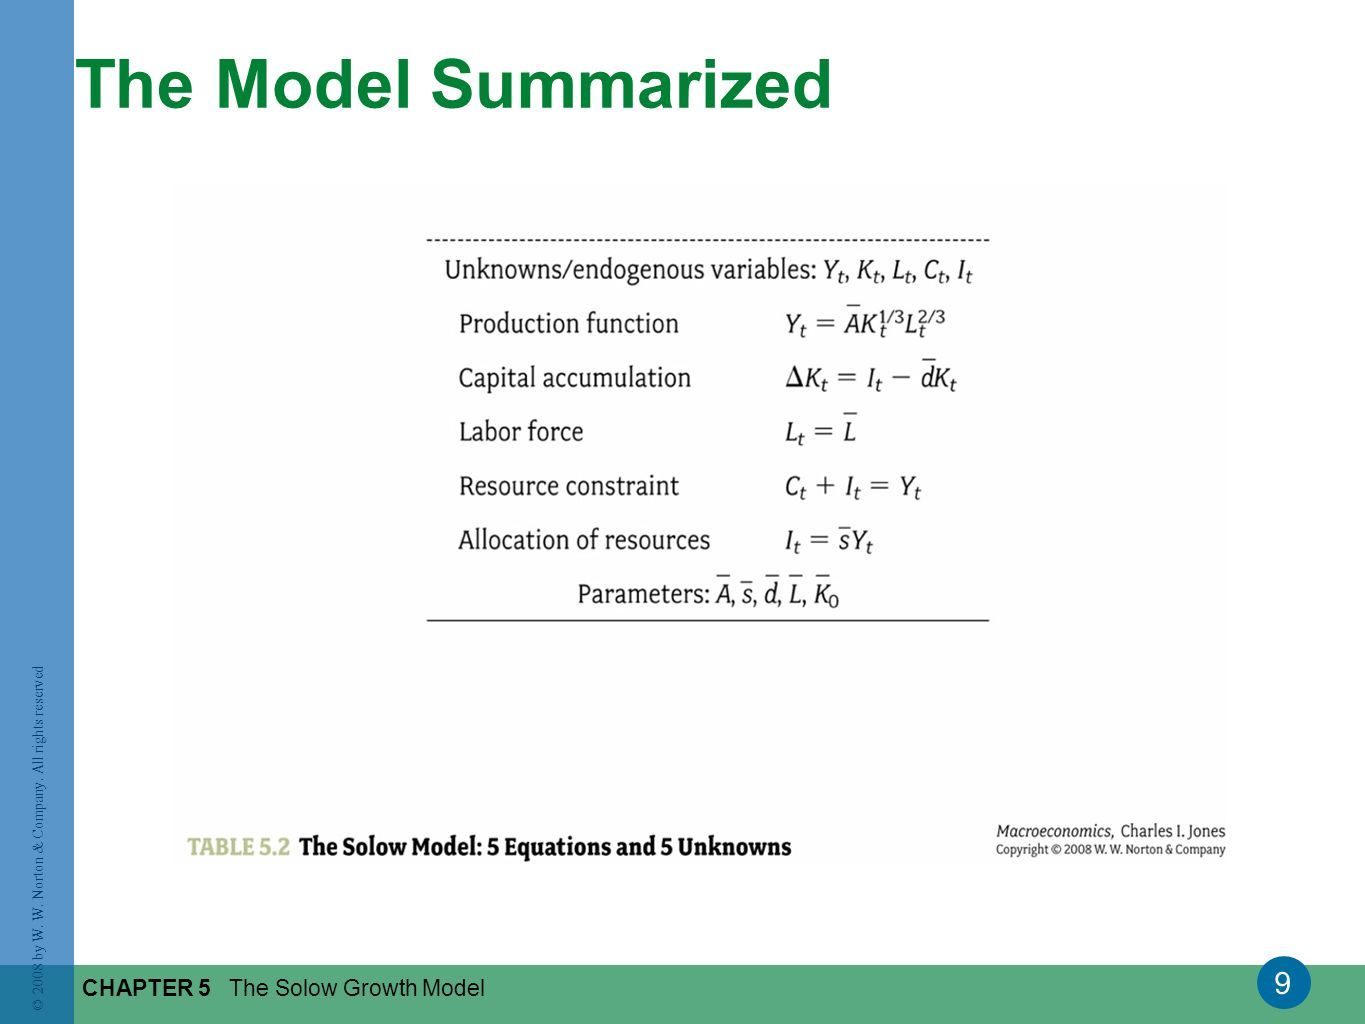 9 © 2008 by W. W. Norton & Company. All rights reserved CHAPTER 5 The Solow Growth Model The Model Summarized